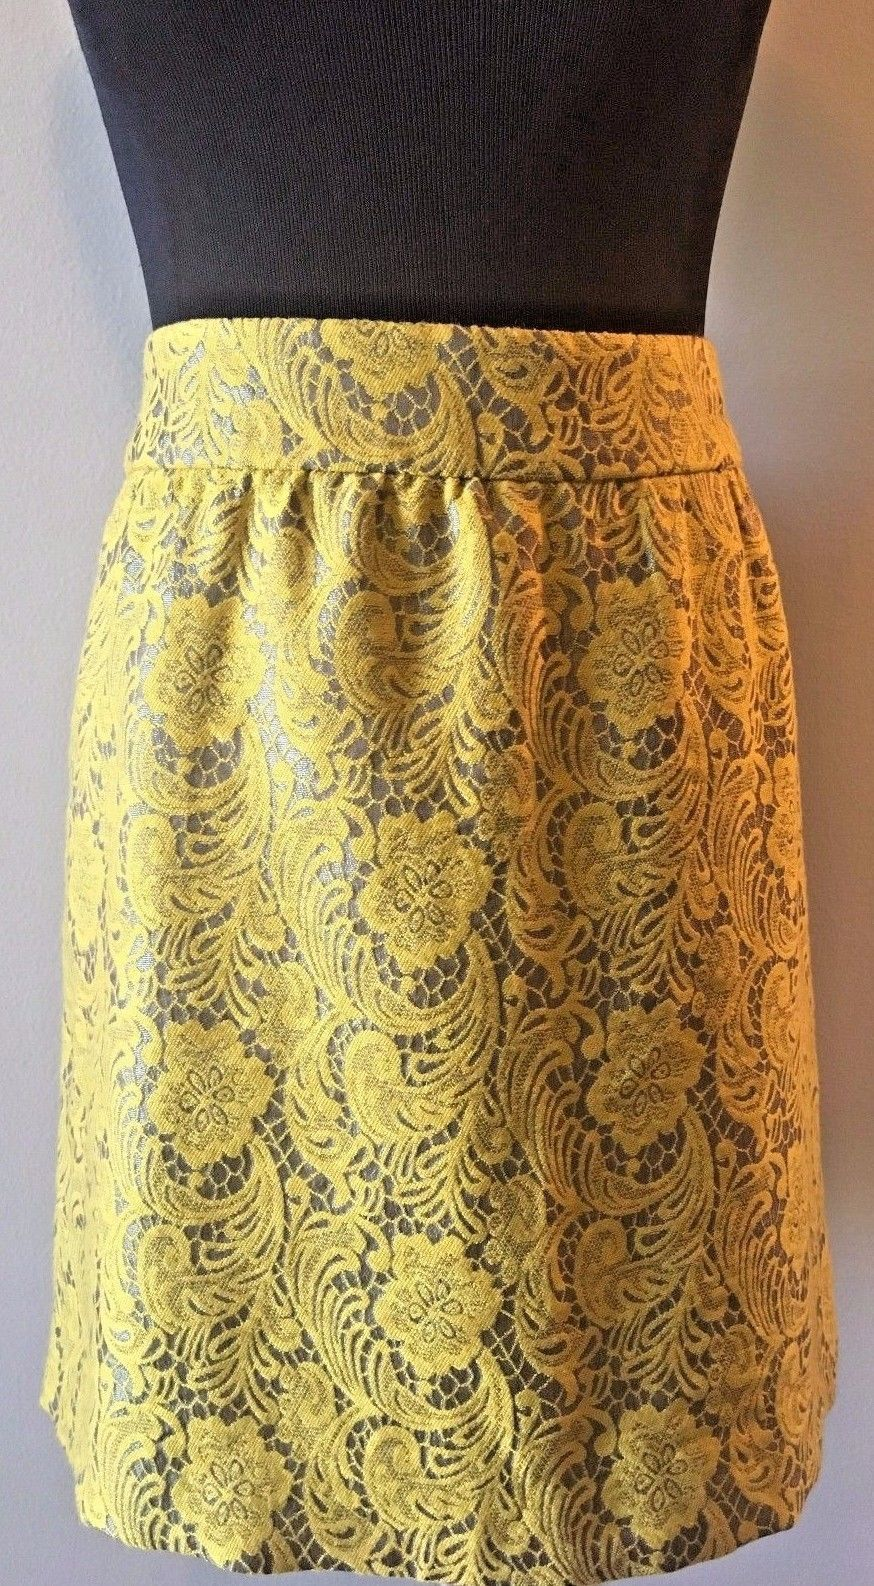 e0eb778e2a S l1600. S l1600. Previous. Banana Republic Yellow and Gray Lace Floral  Mini Lined Short Skirt size ...